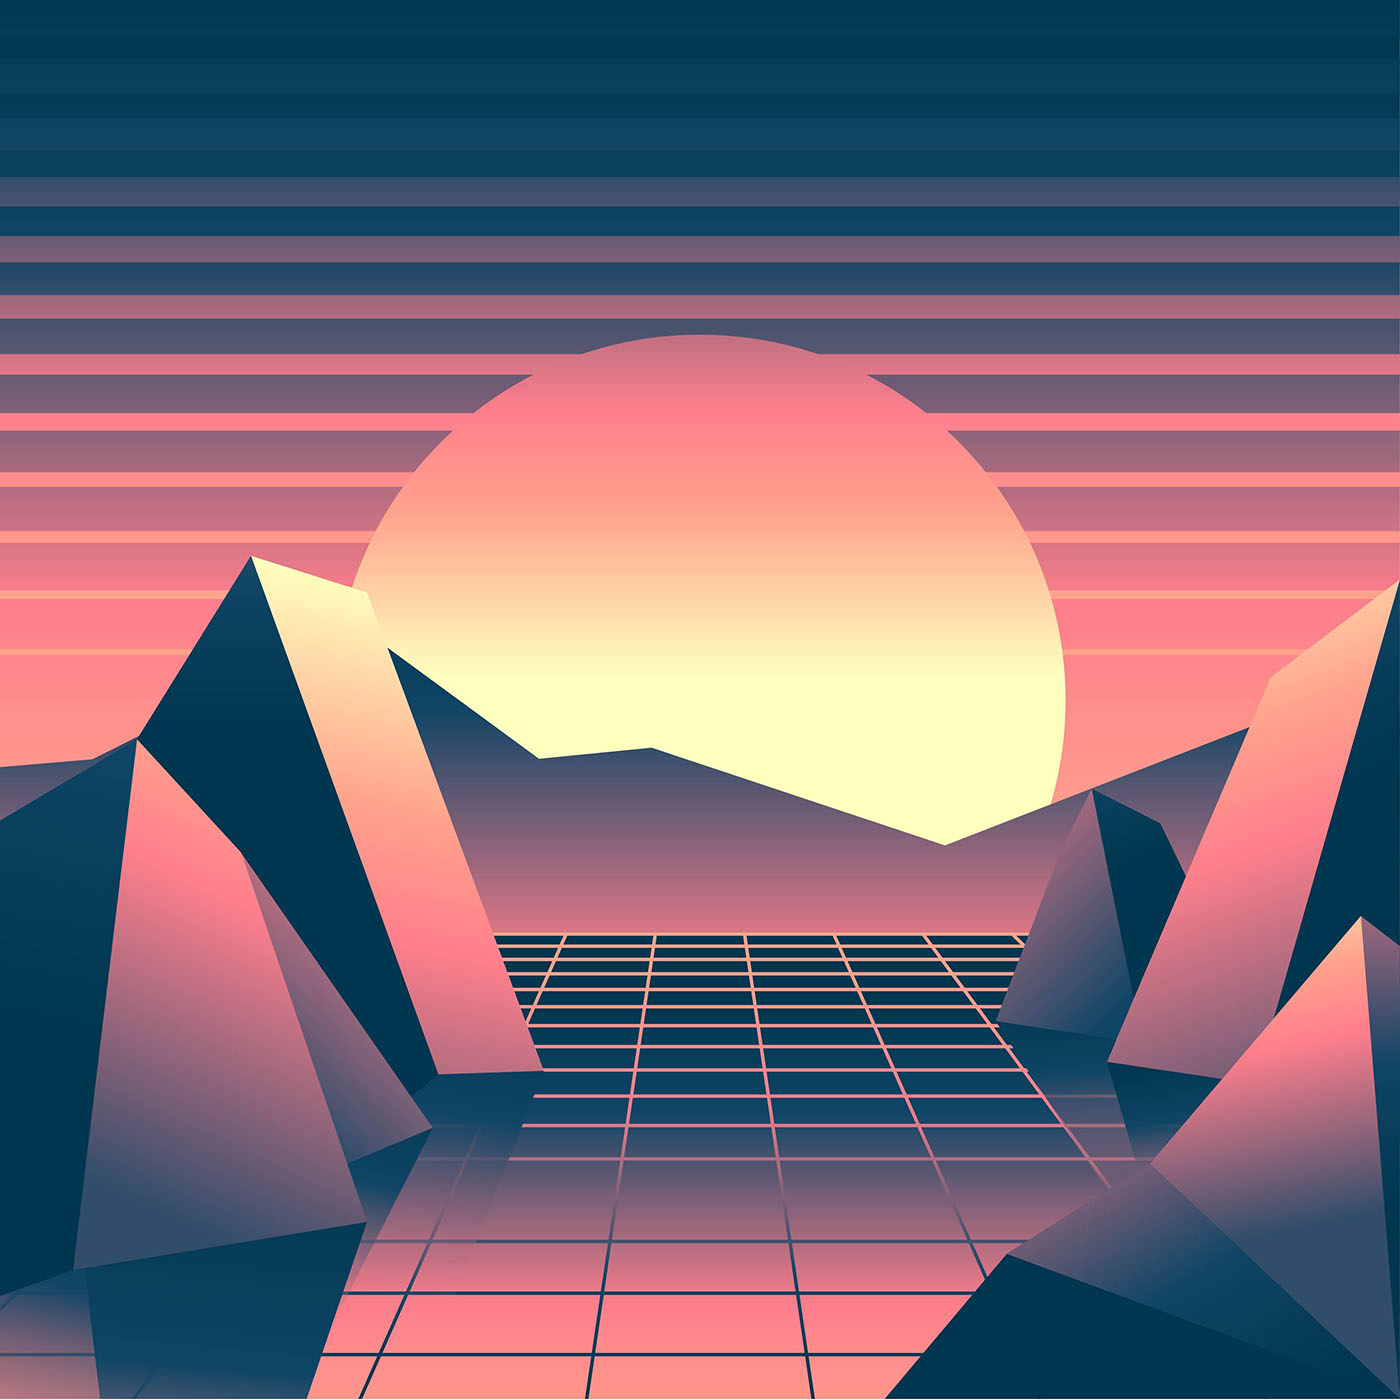 retro background vaporwave sunset landscape